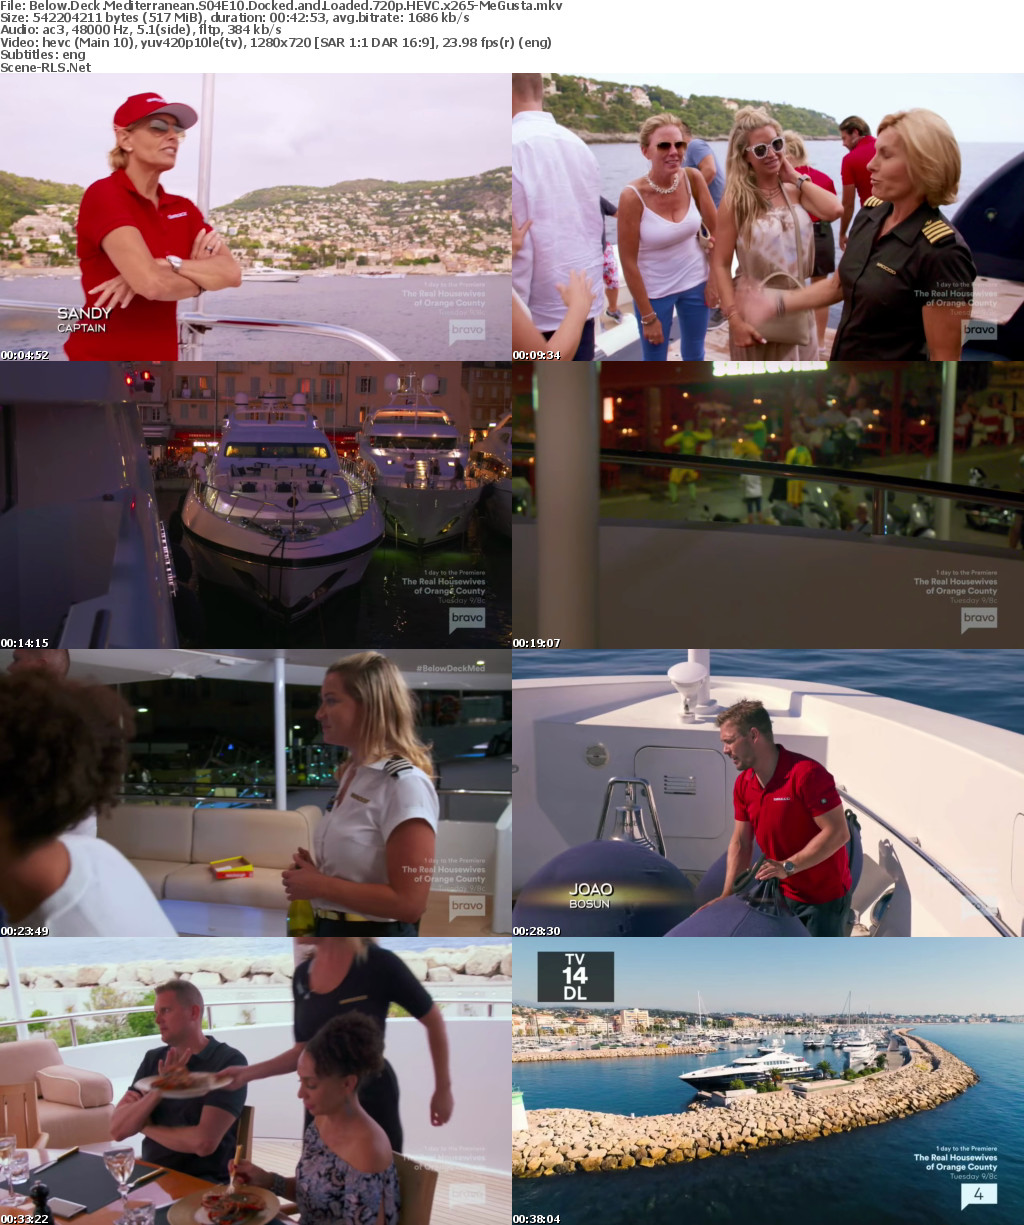 Below Deck Mediterranean S04E10 Docked and Loaded HDTV x264